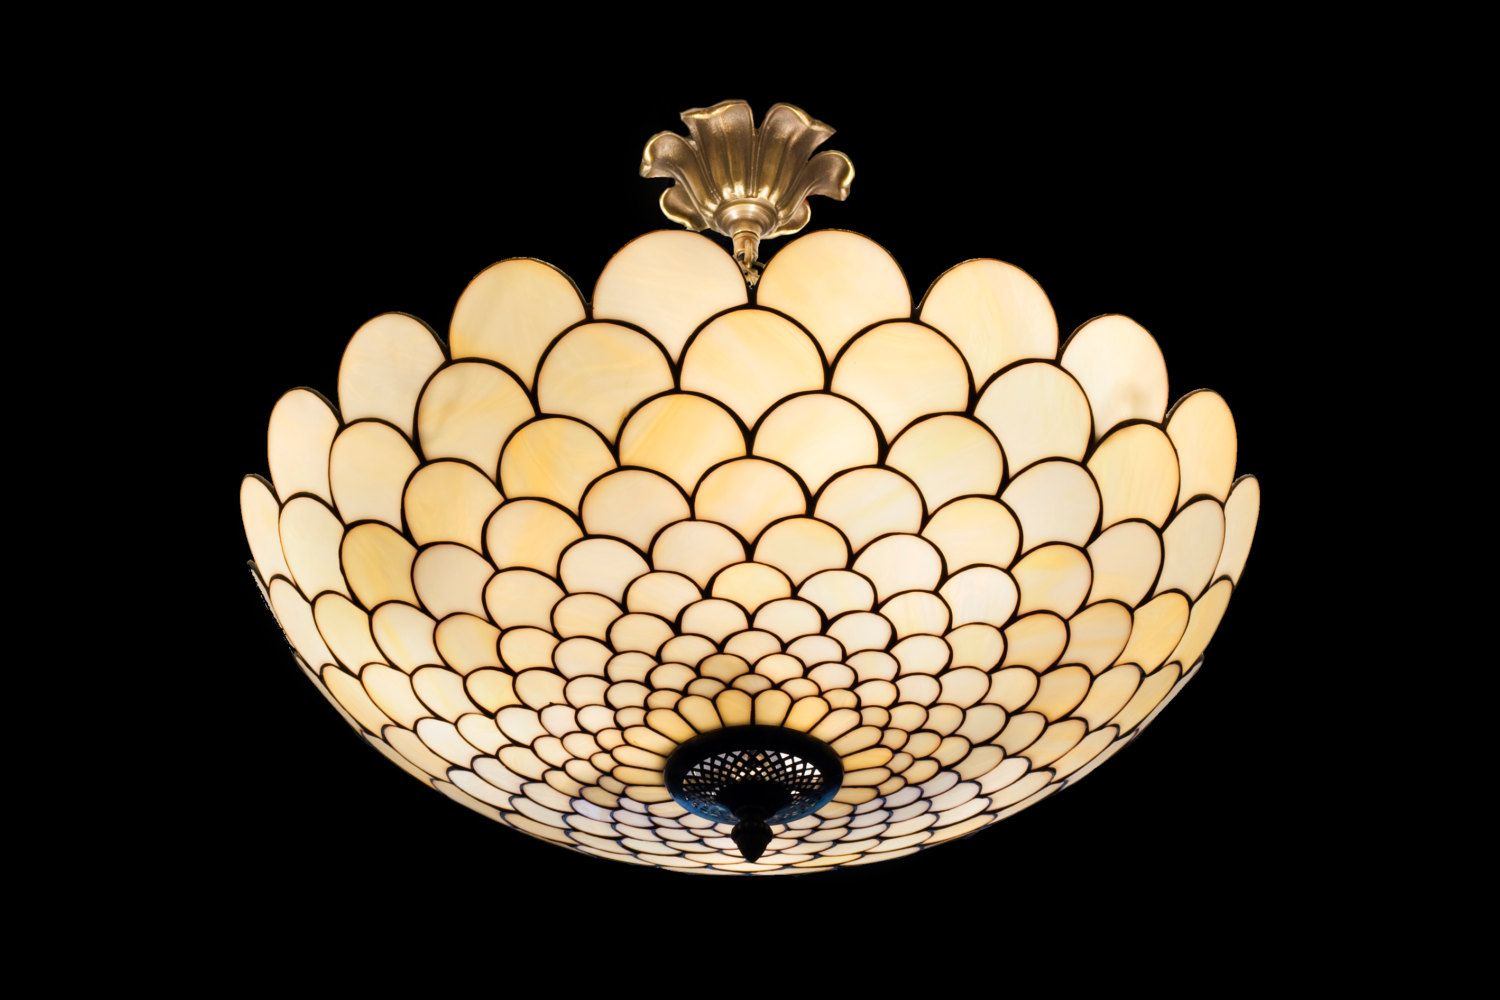 Tiffany ceiling lamp google search possibilty pinterest tiffany ceiling lamp google search aloadofball Gallery